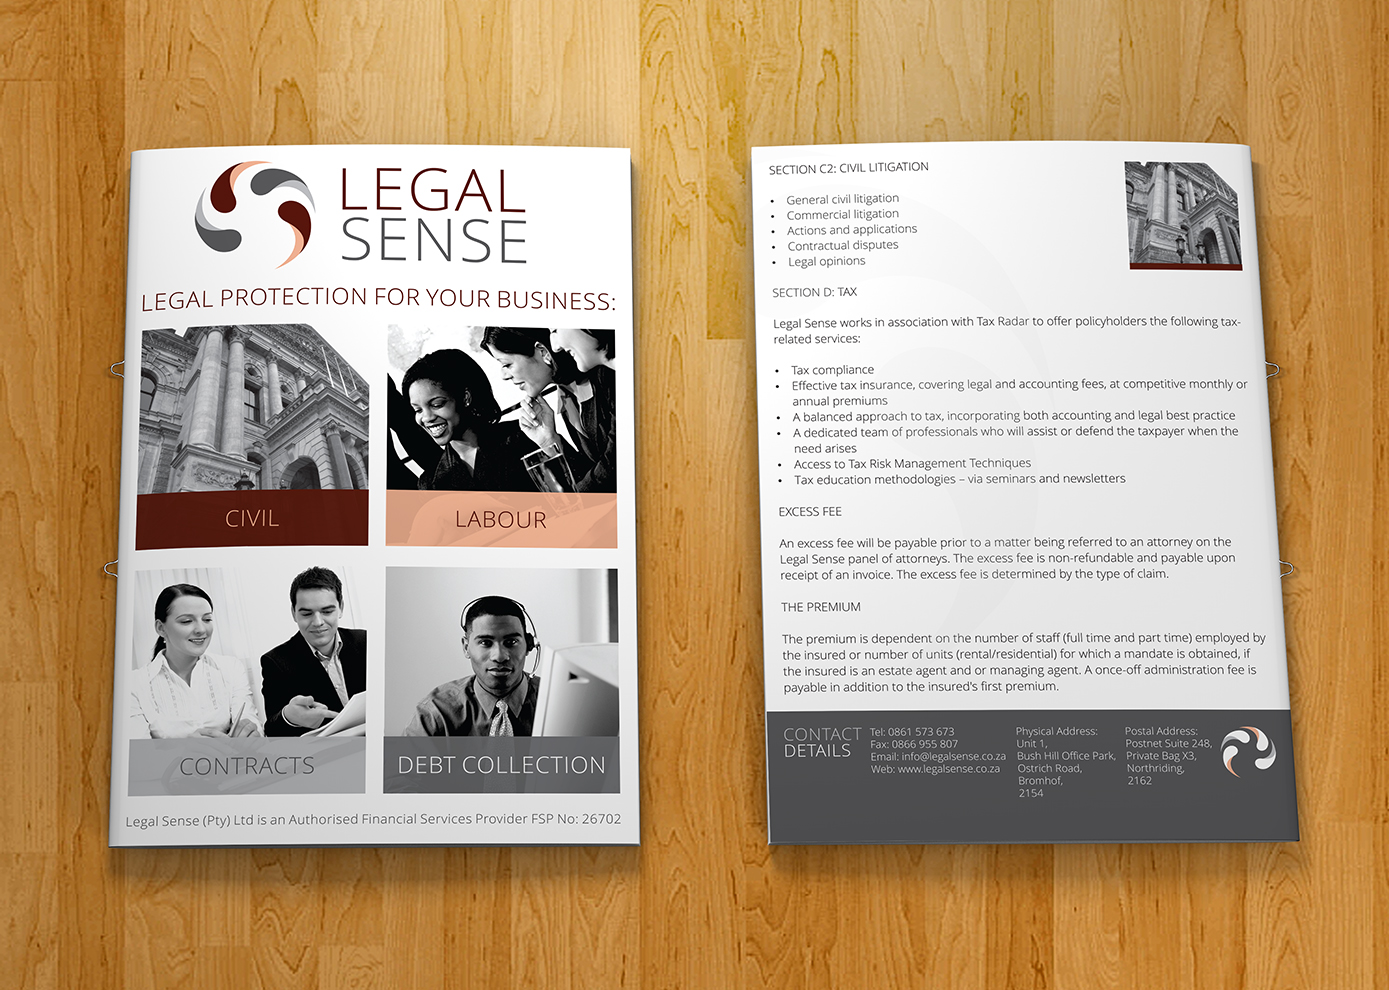 contract law business advisory leaflet Commercial law solutions we help companies establish the flexible working relationships and effective contracts needed litigation in all fields of business.